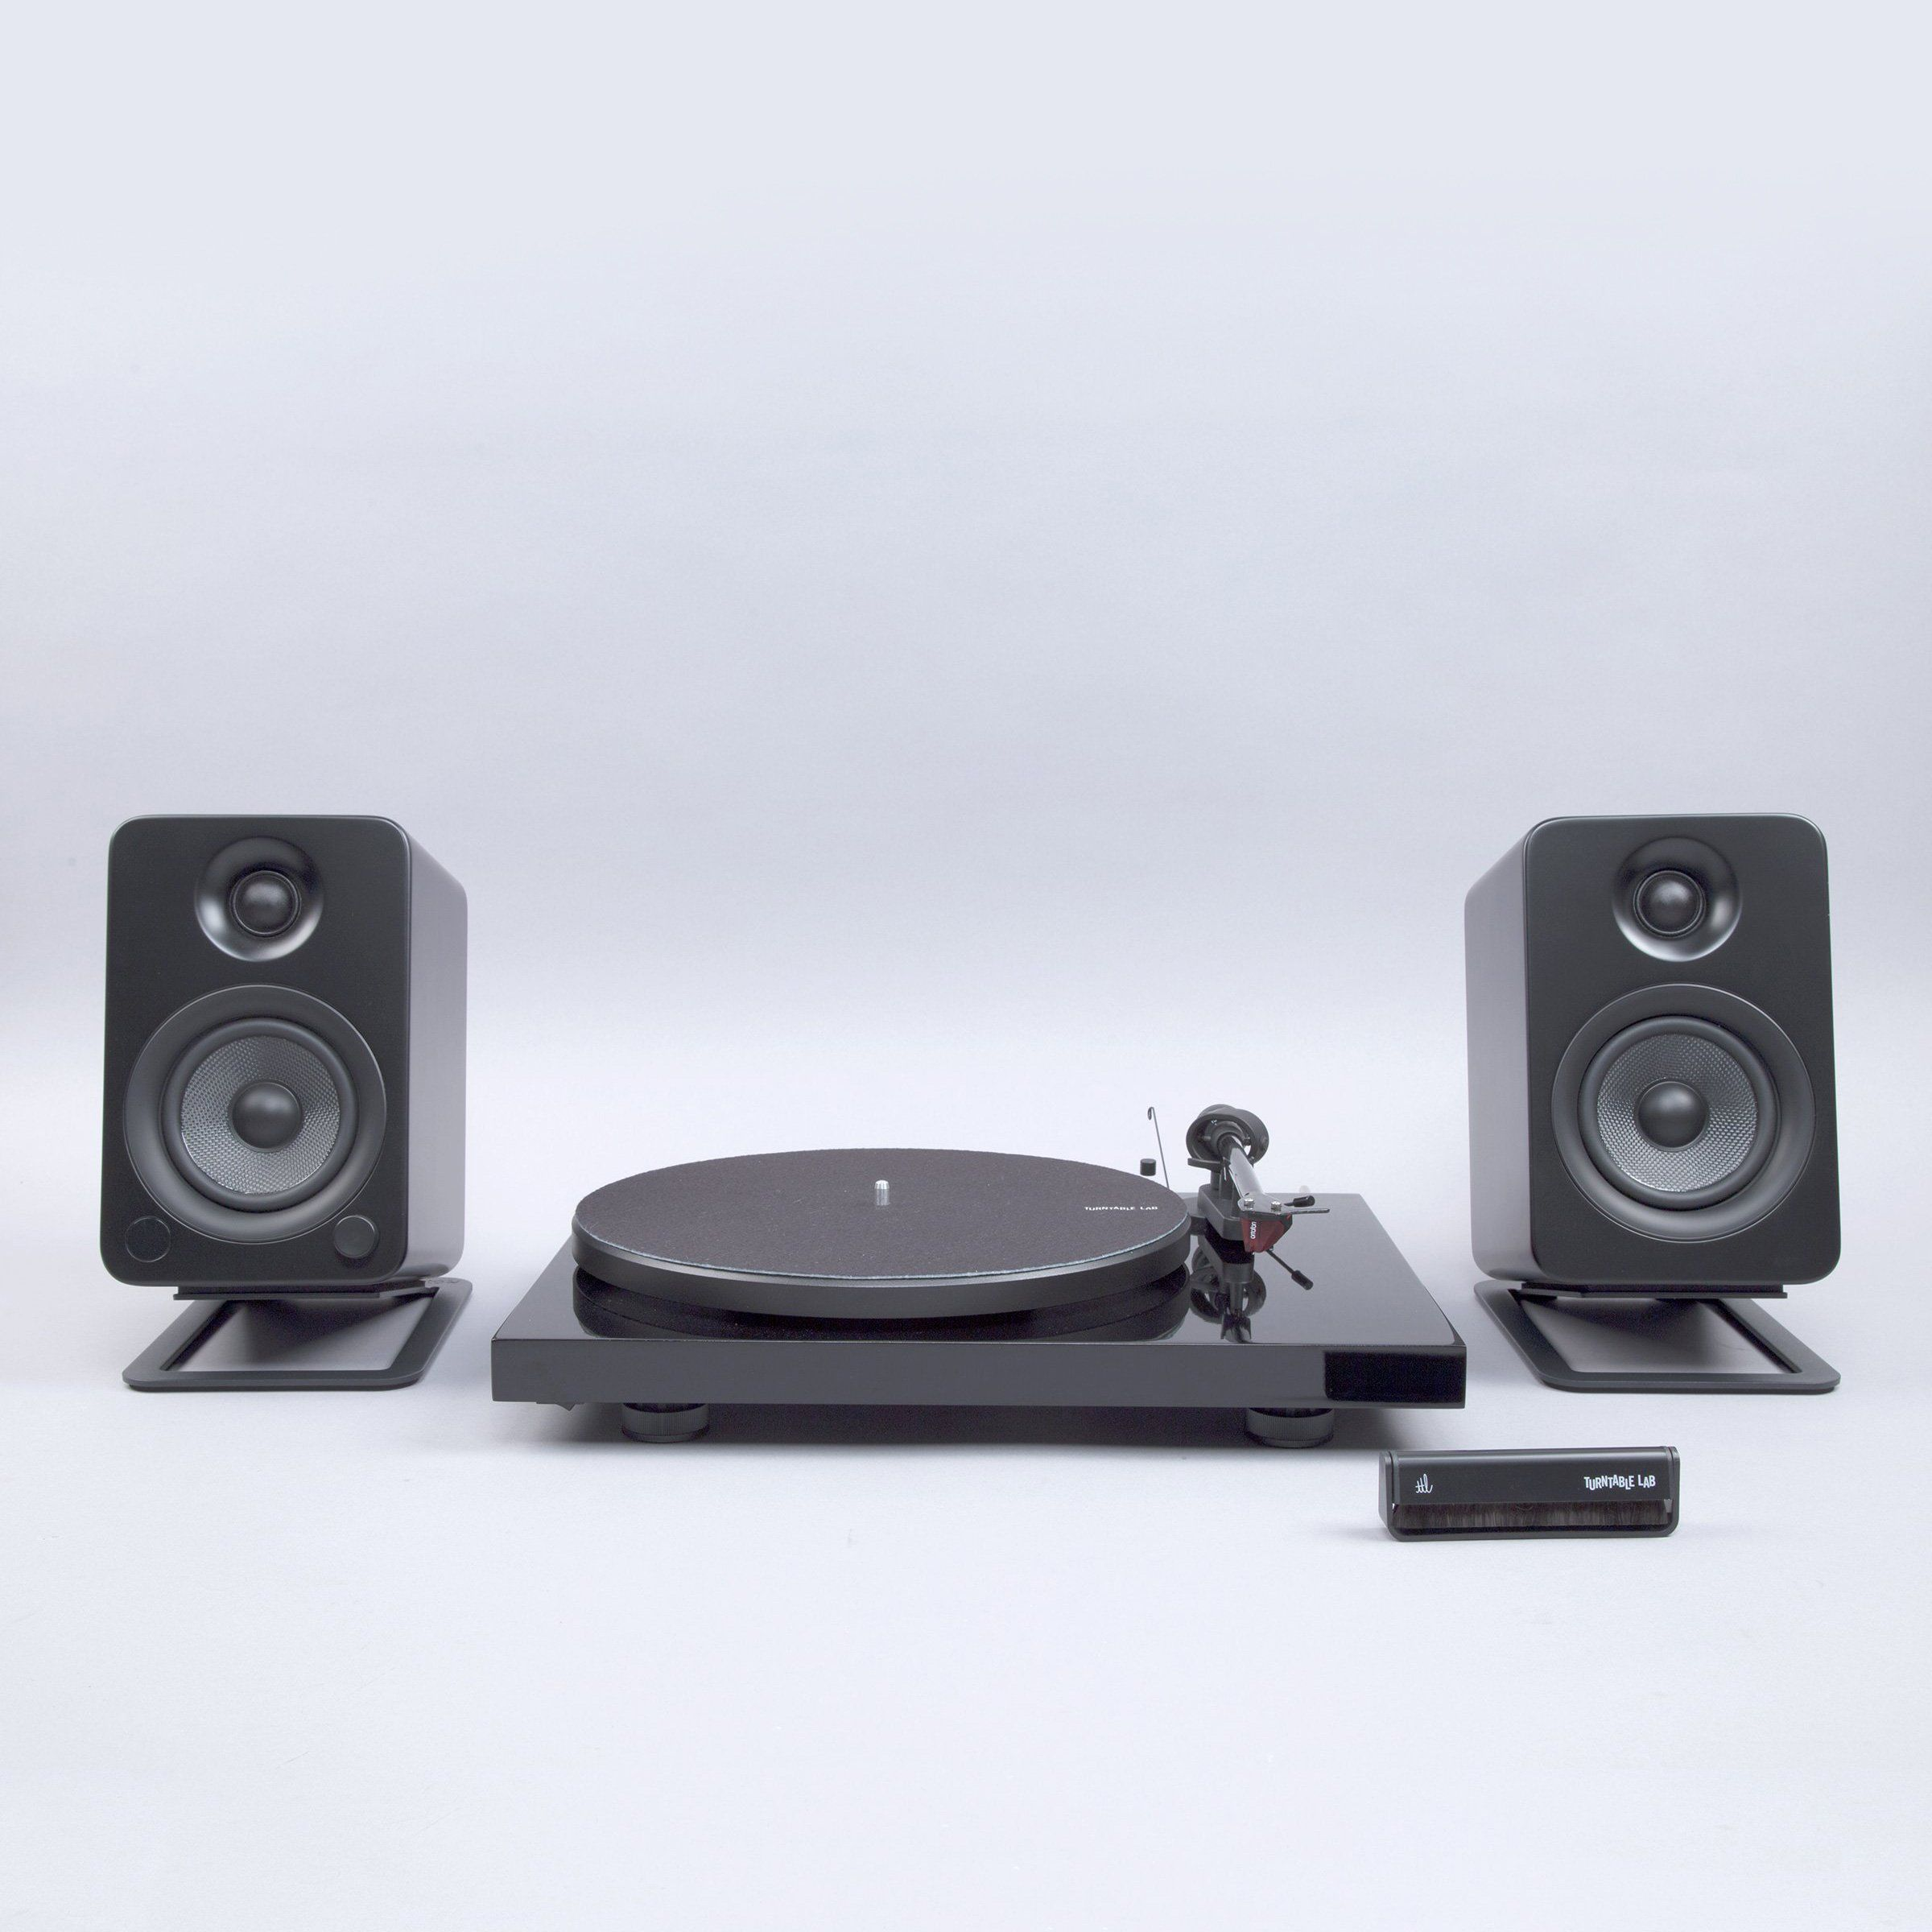 Pro-Ject Debut Carbon DC / Kanto YU4 / Turntable Package